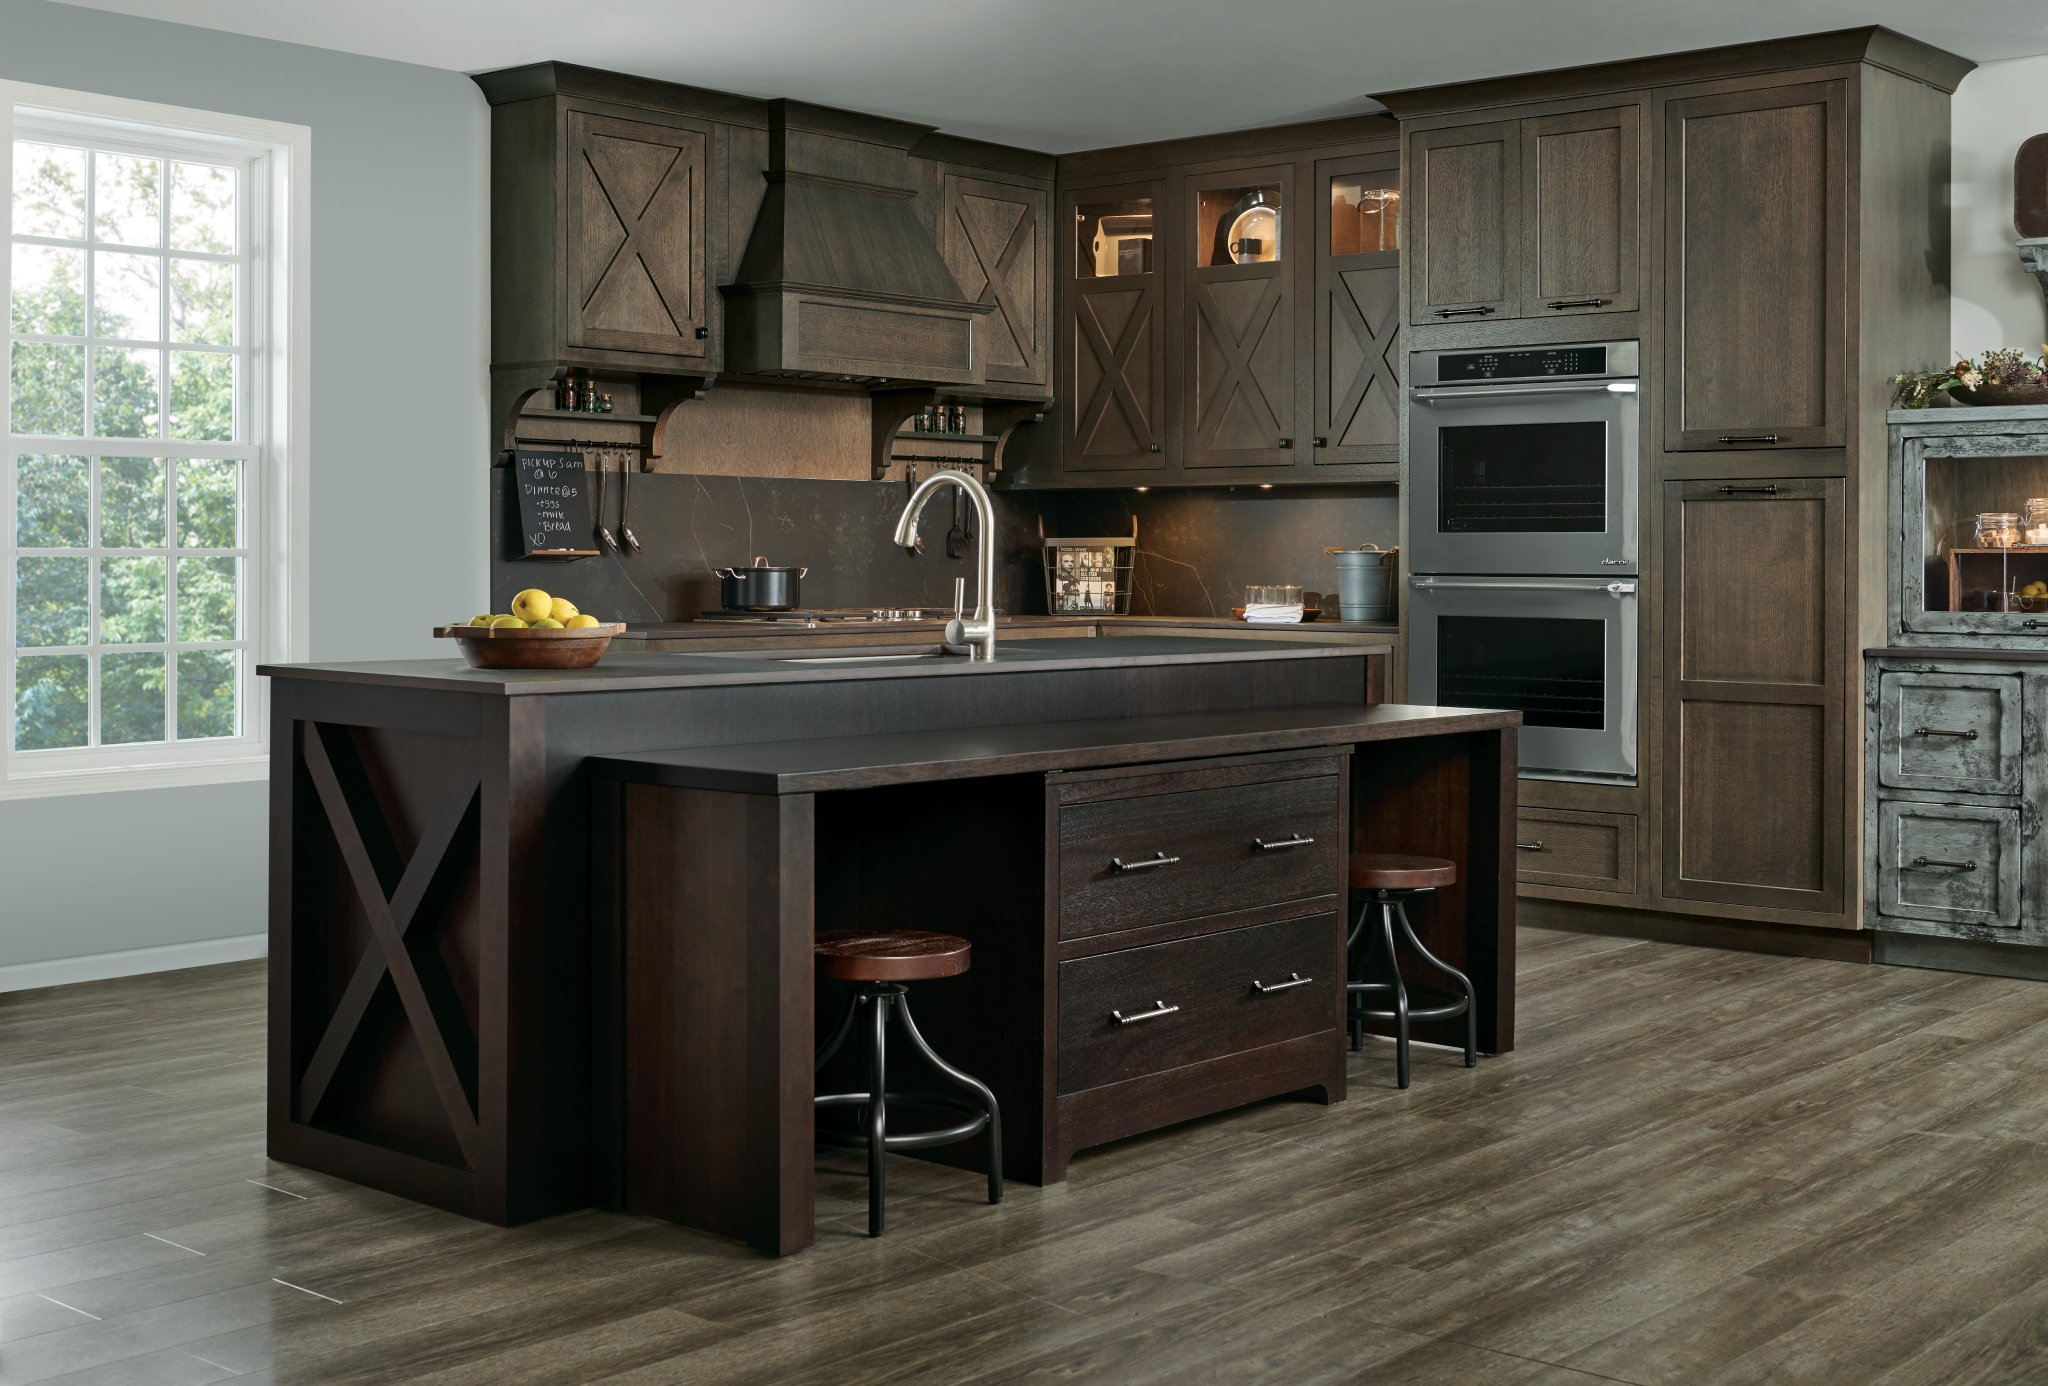 Quality Kitchen Cabinets Top 10 Characteristics of High Quality Kitchen Cabinets | Premier